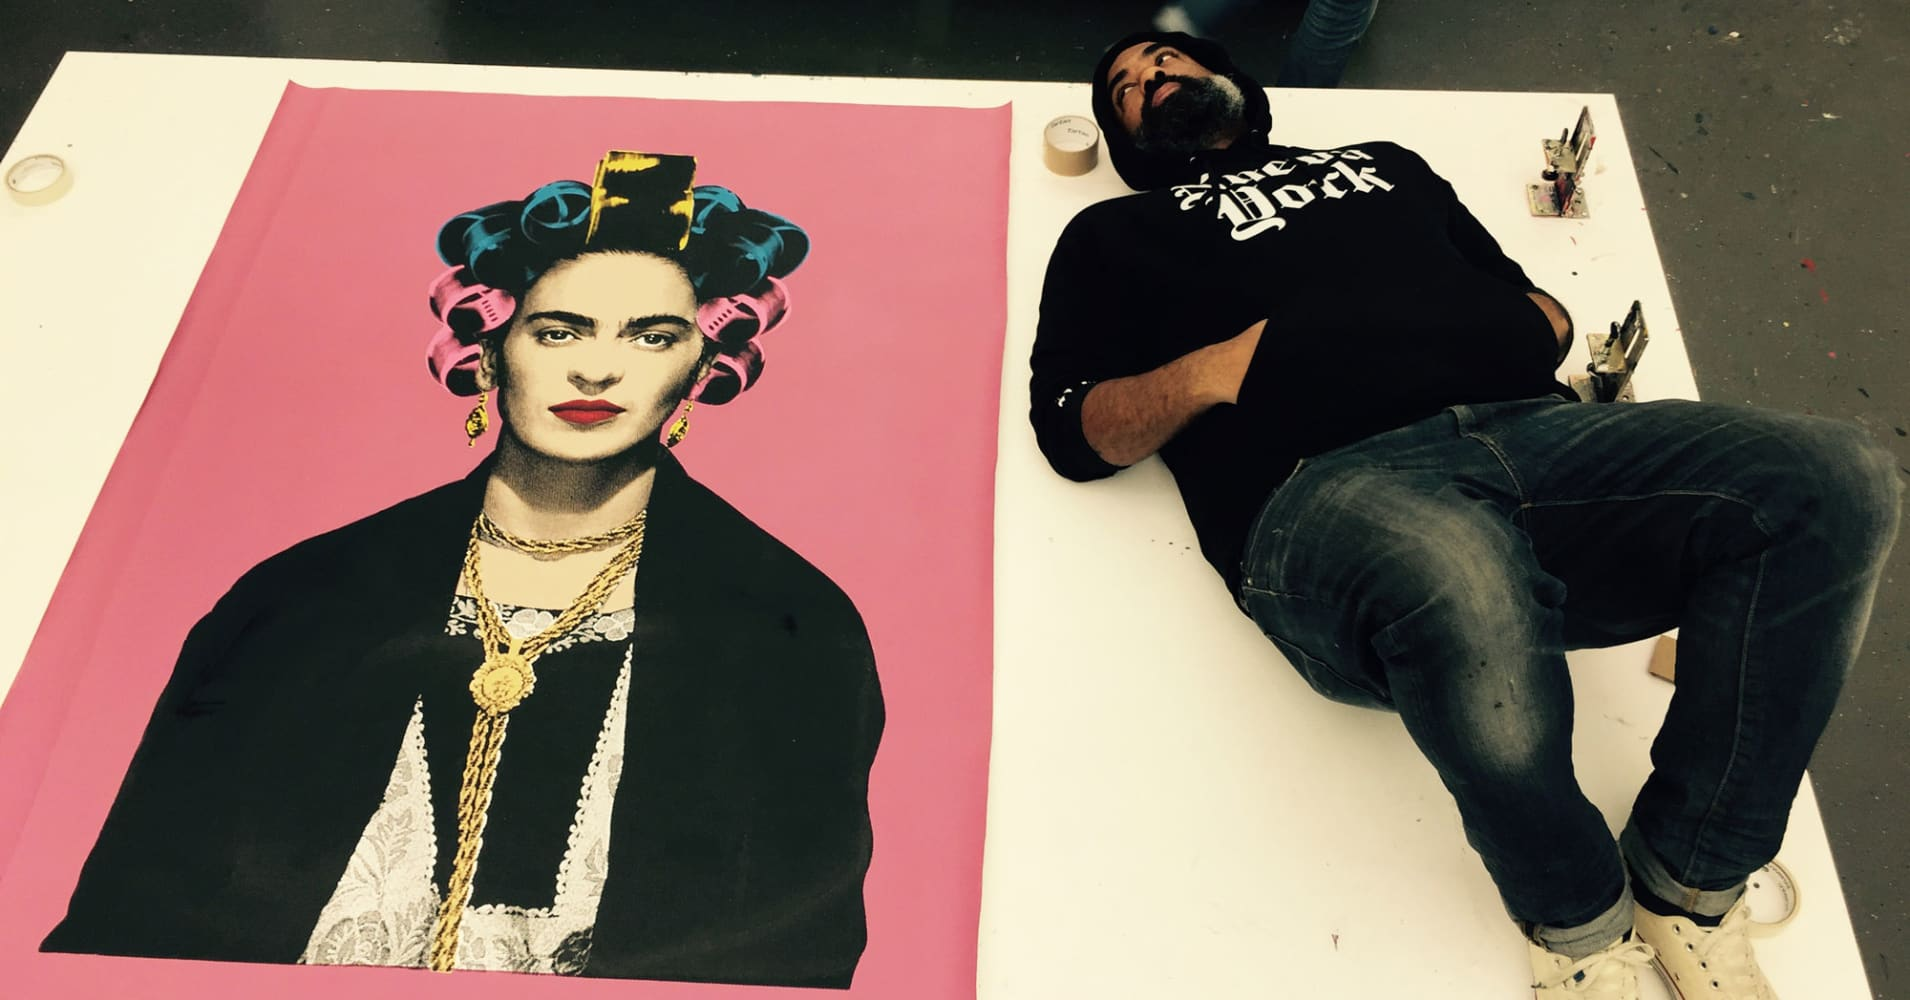 M. Tony Peralta, founder of the Peralta Project, lays down next to his canvas of Frida Kahlo.